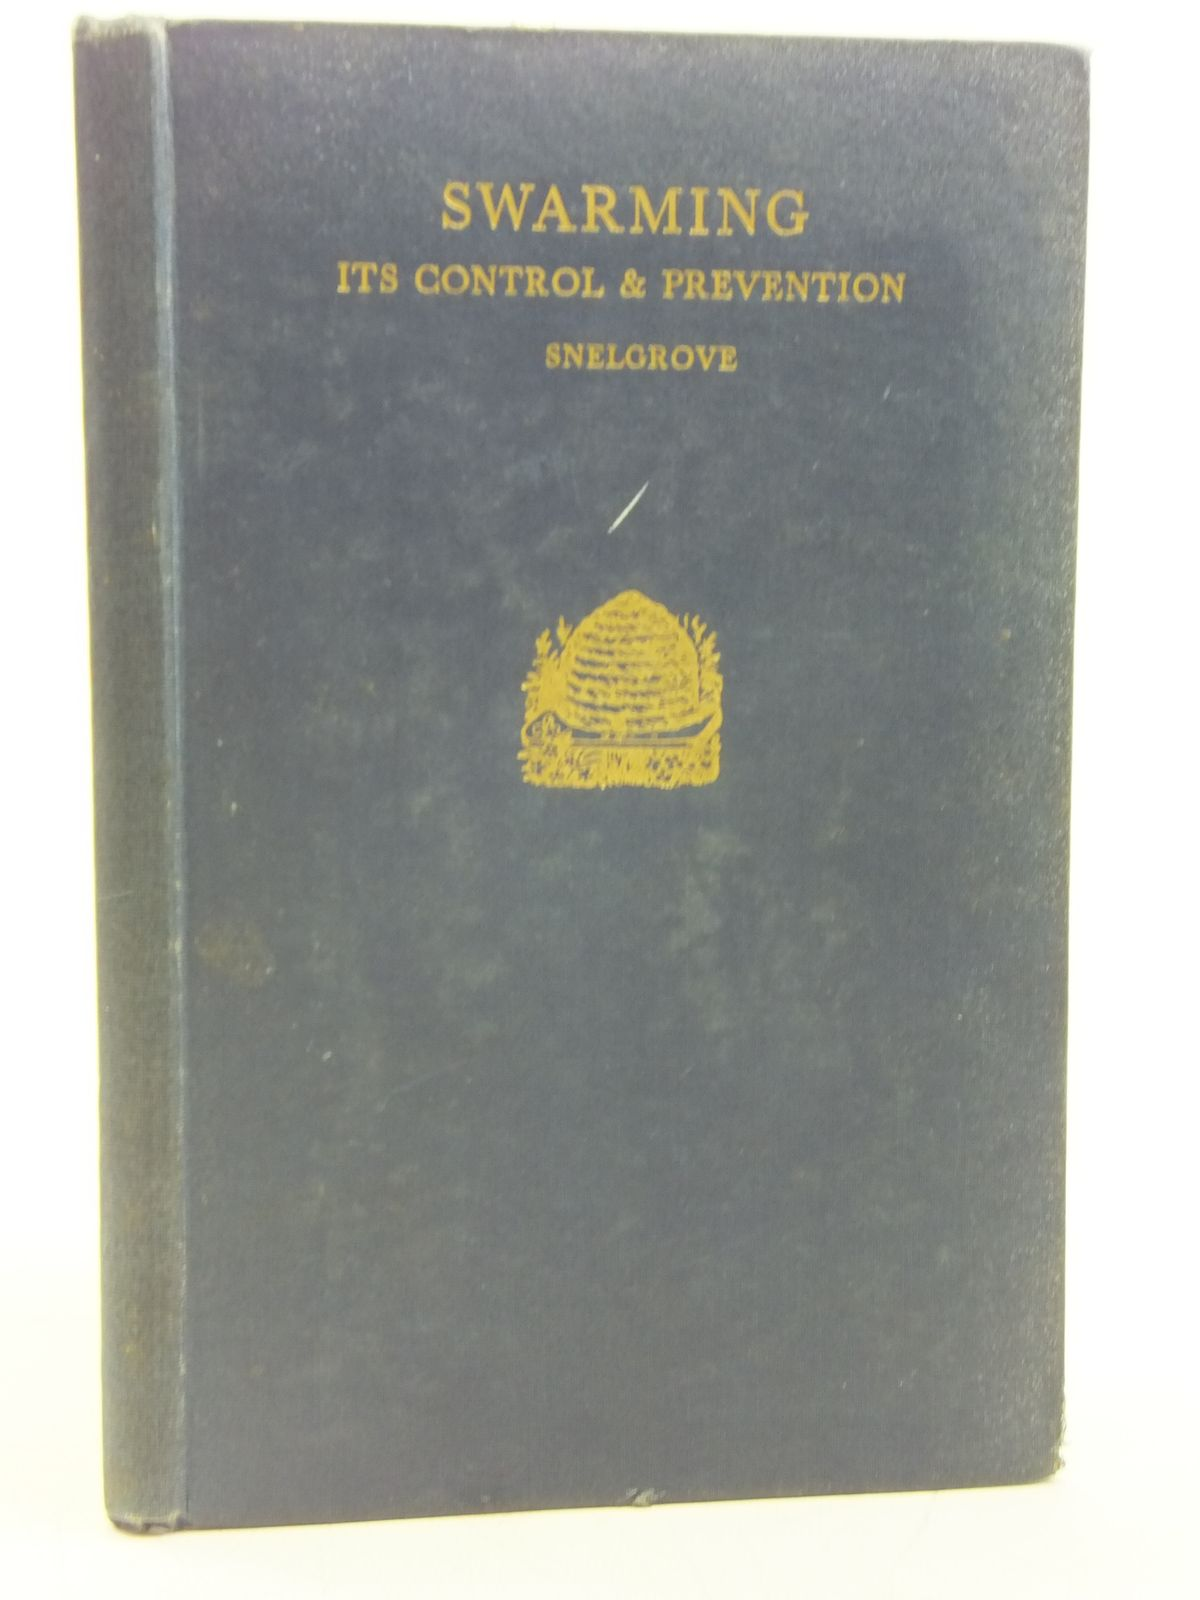 Photo of SWARMING ITS CONTROL AND PREVENTION written by Snelgrove, L.E. published by I.A.L. Snelgrove (STOCK CODE: 2119549)  for sale by Stella & Rose's Books